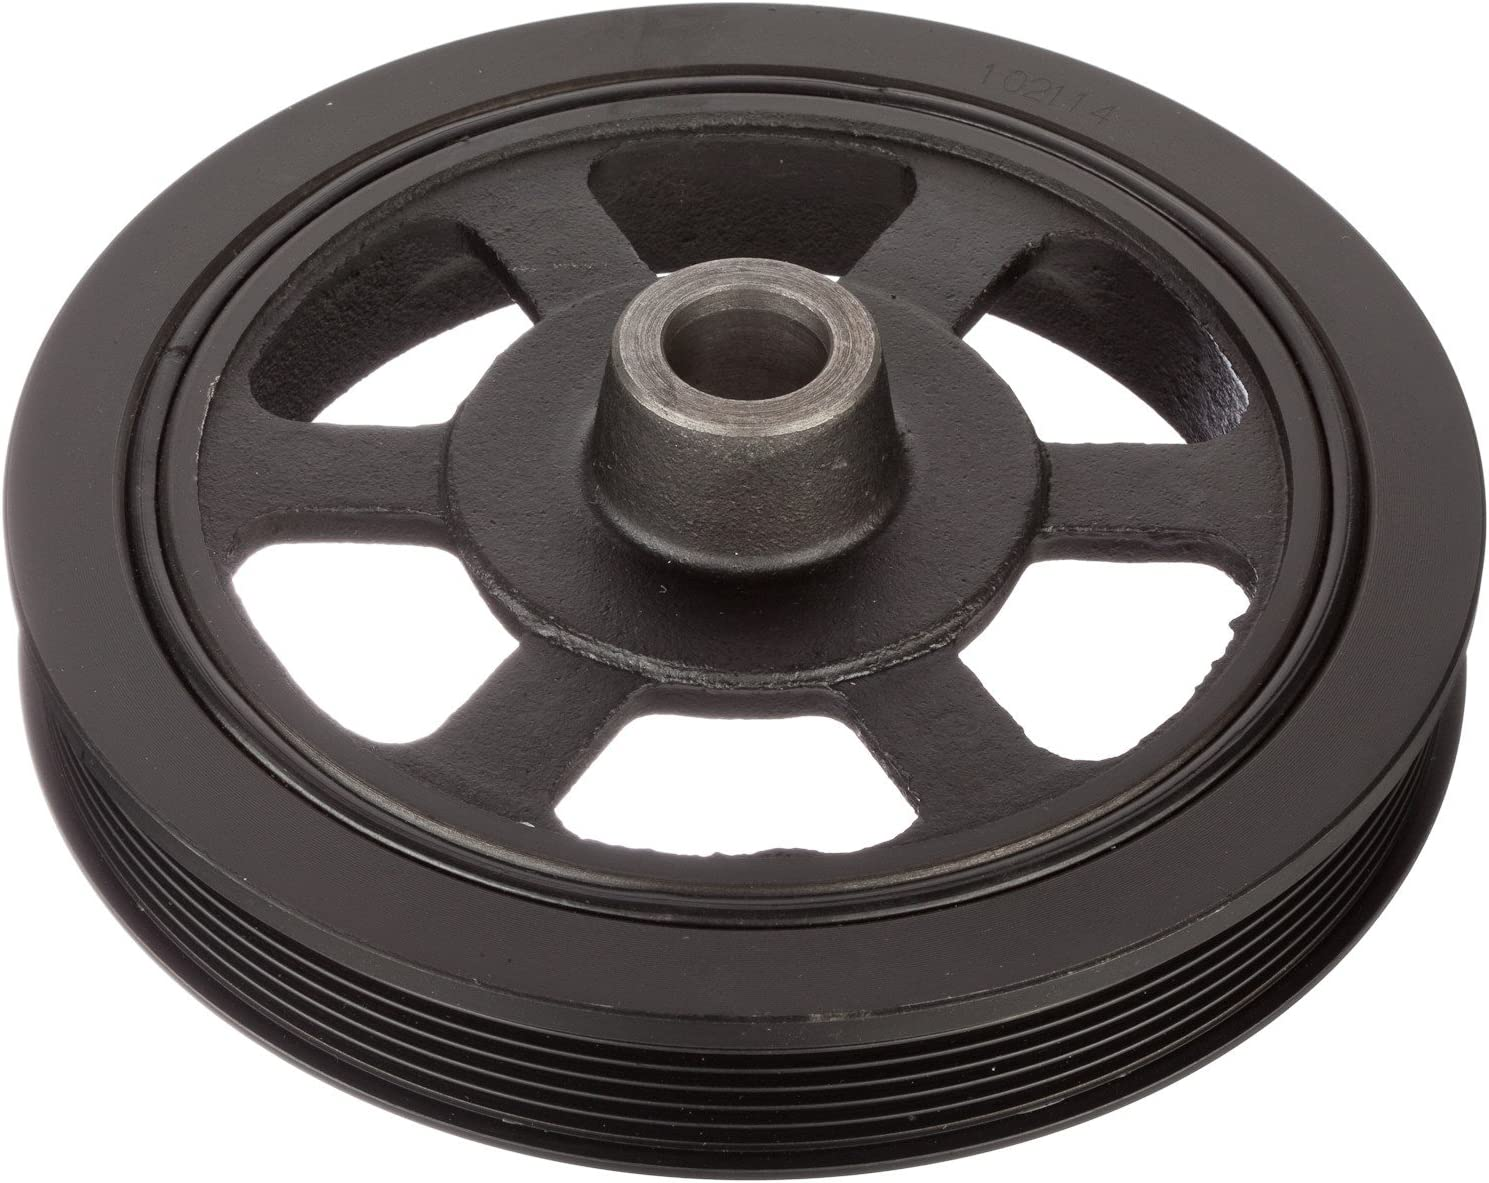 Dorman Harmonic Balancer New for Town and Country Dodge Grand 594-103